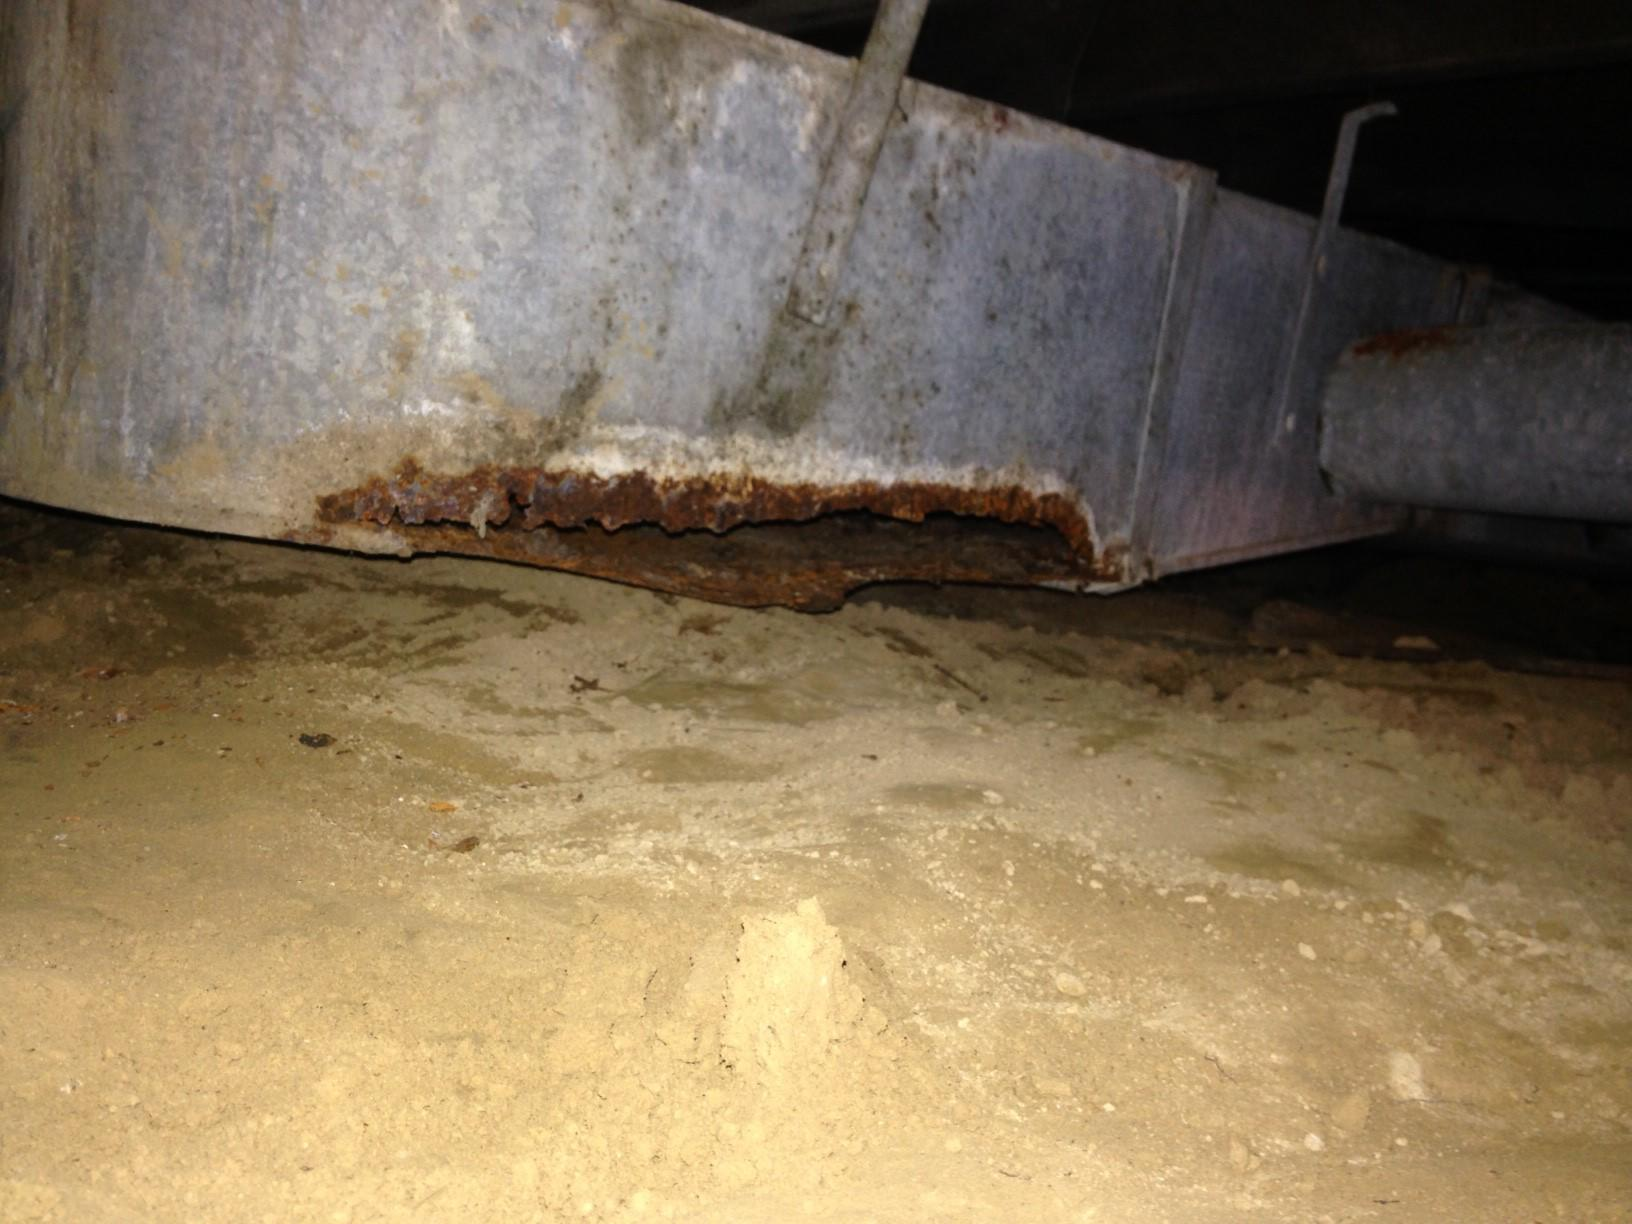 Missing Crawlspace Support